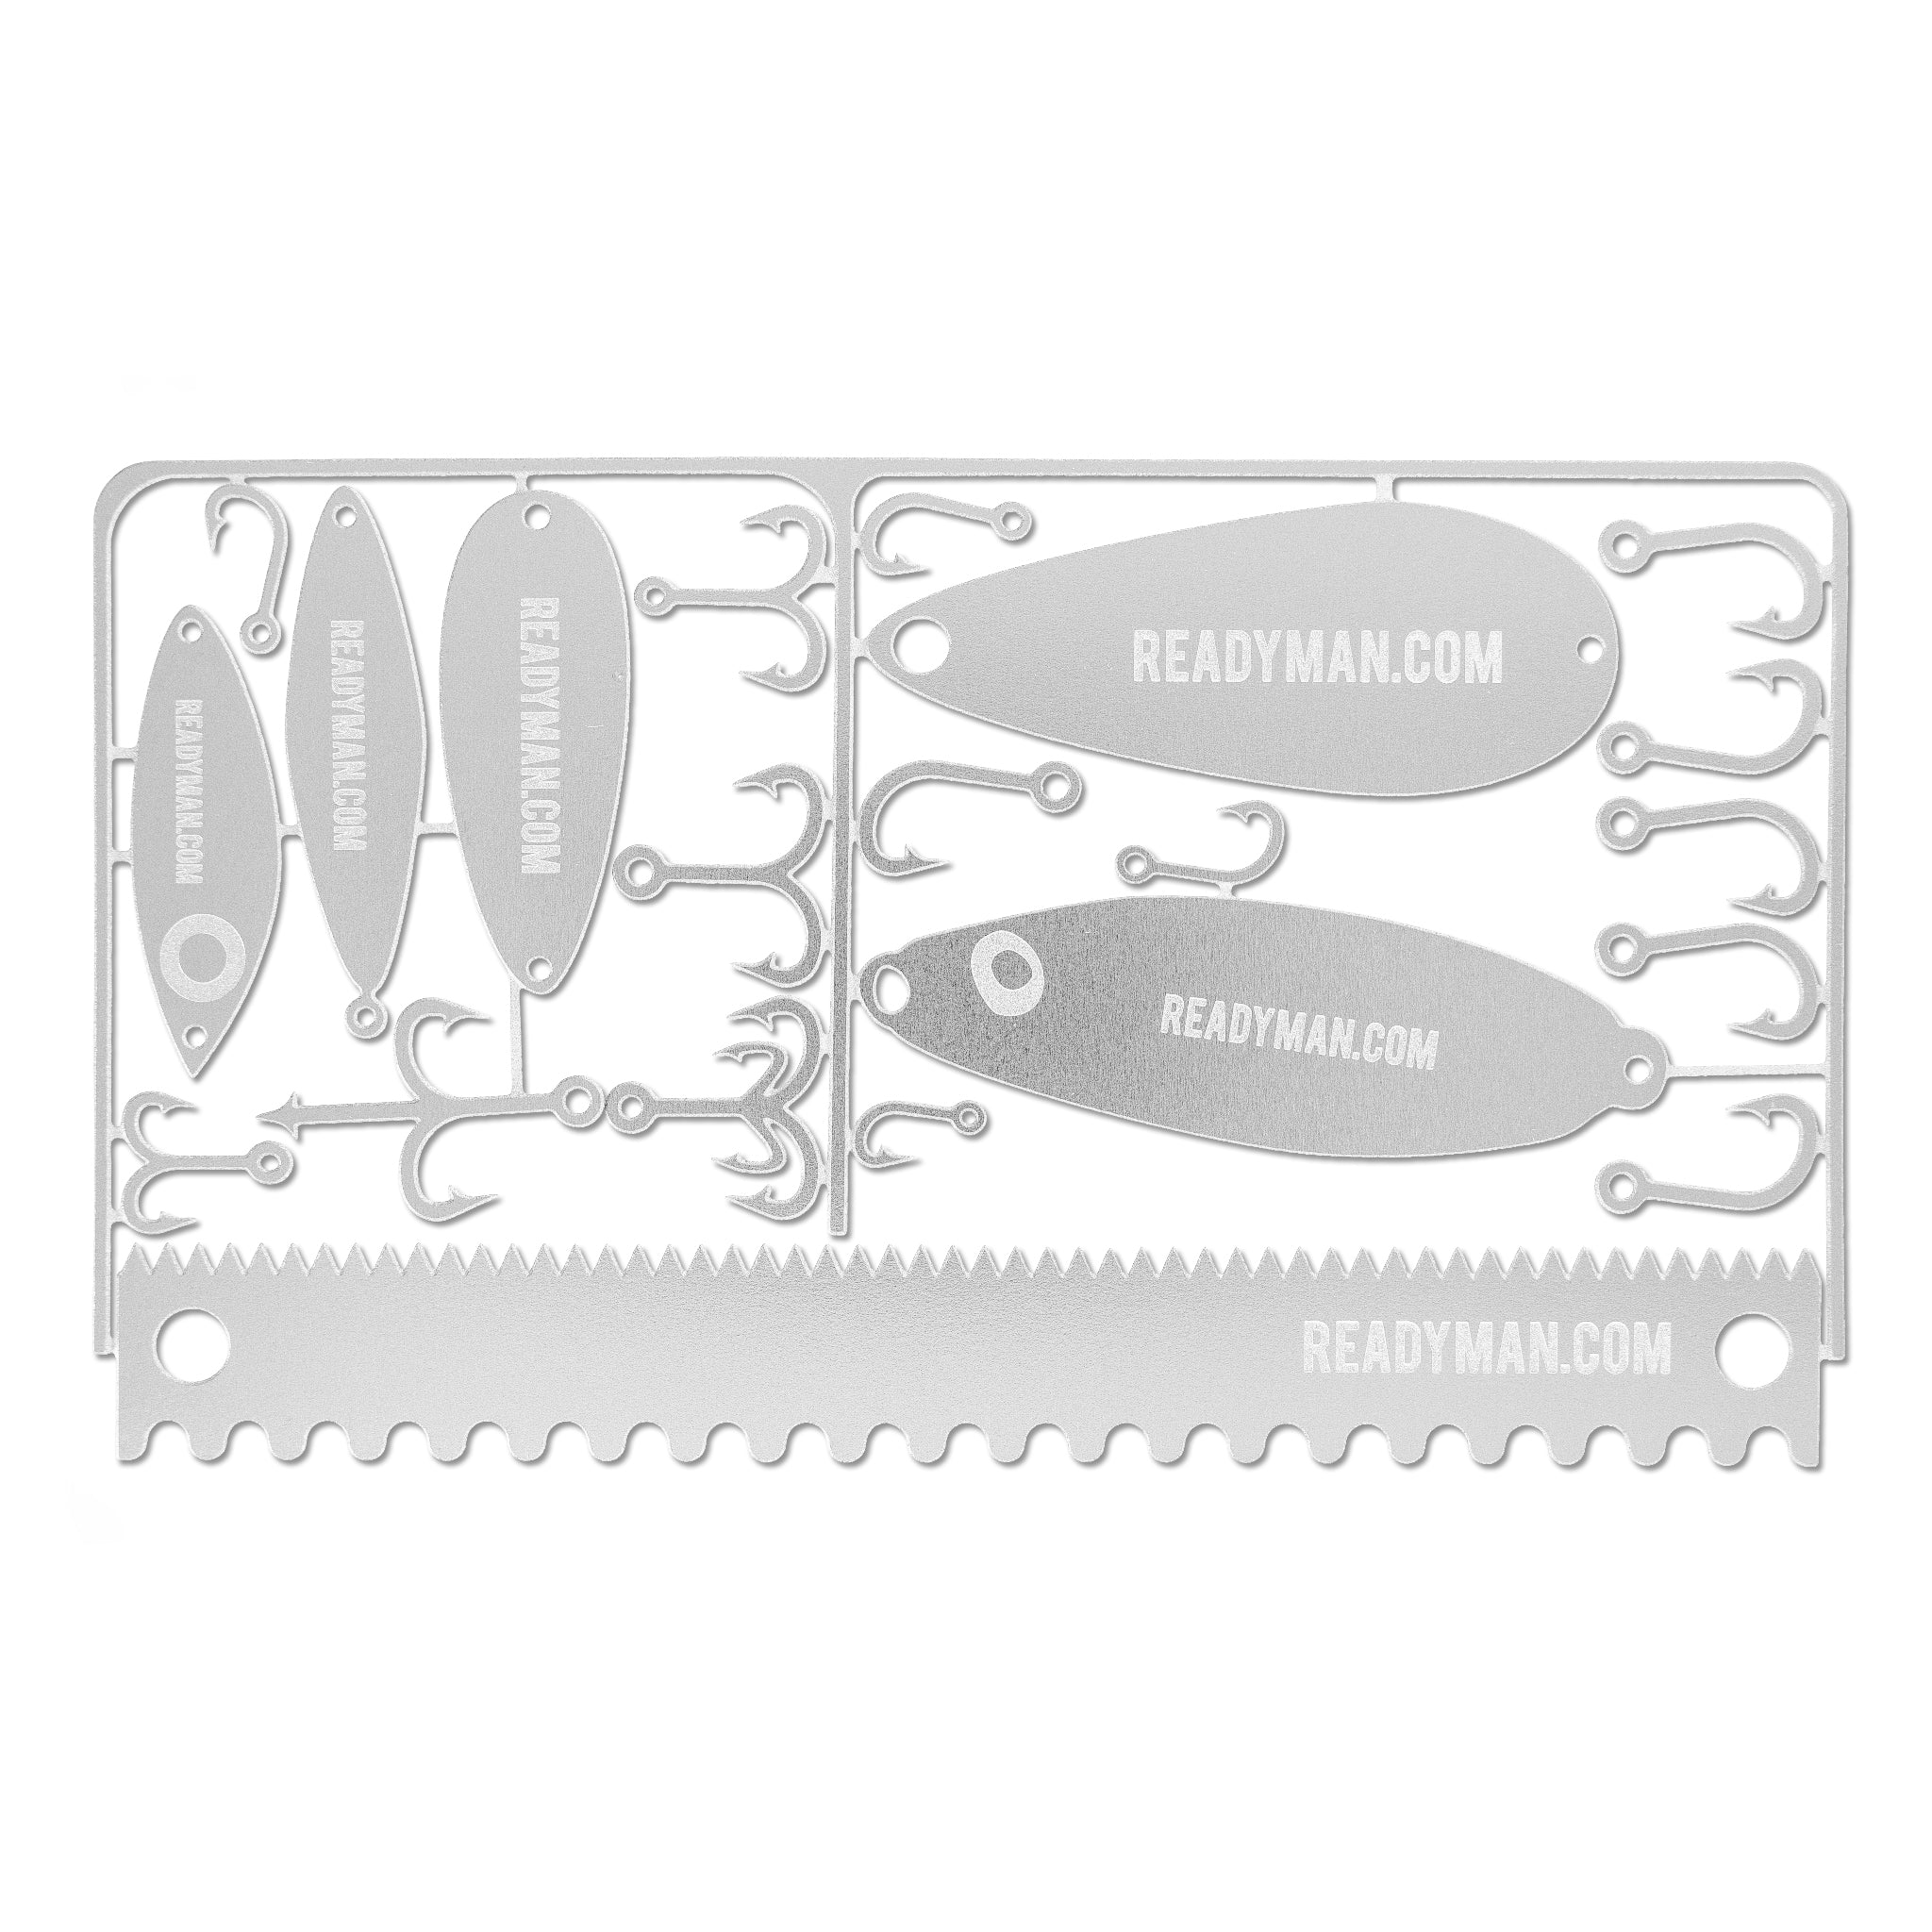 Fisherman's Survival Card